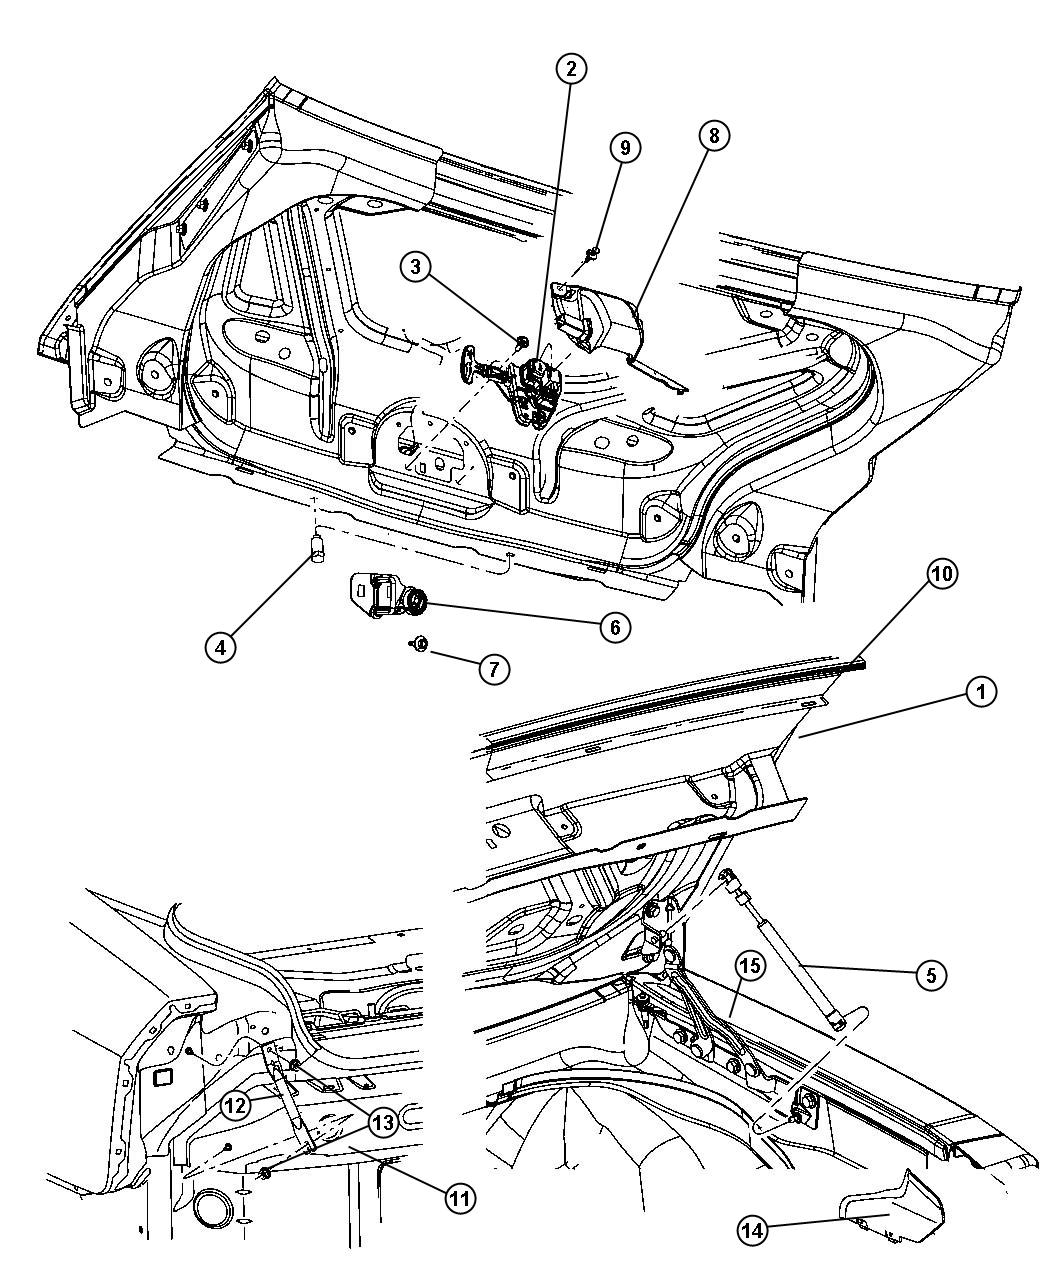 Chrysler 300 Latch. Decklid. Related, Power, Trunklid